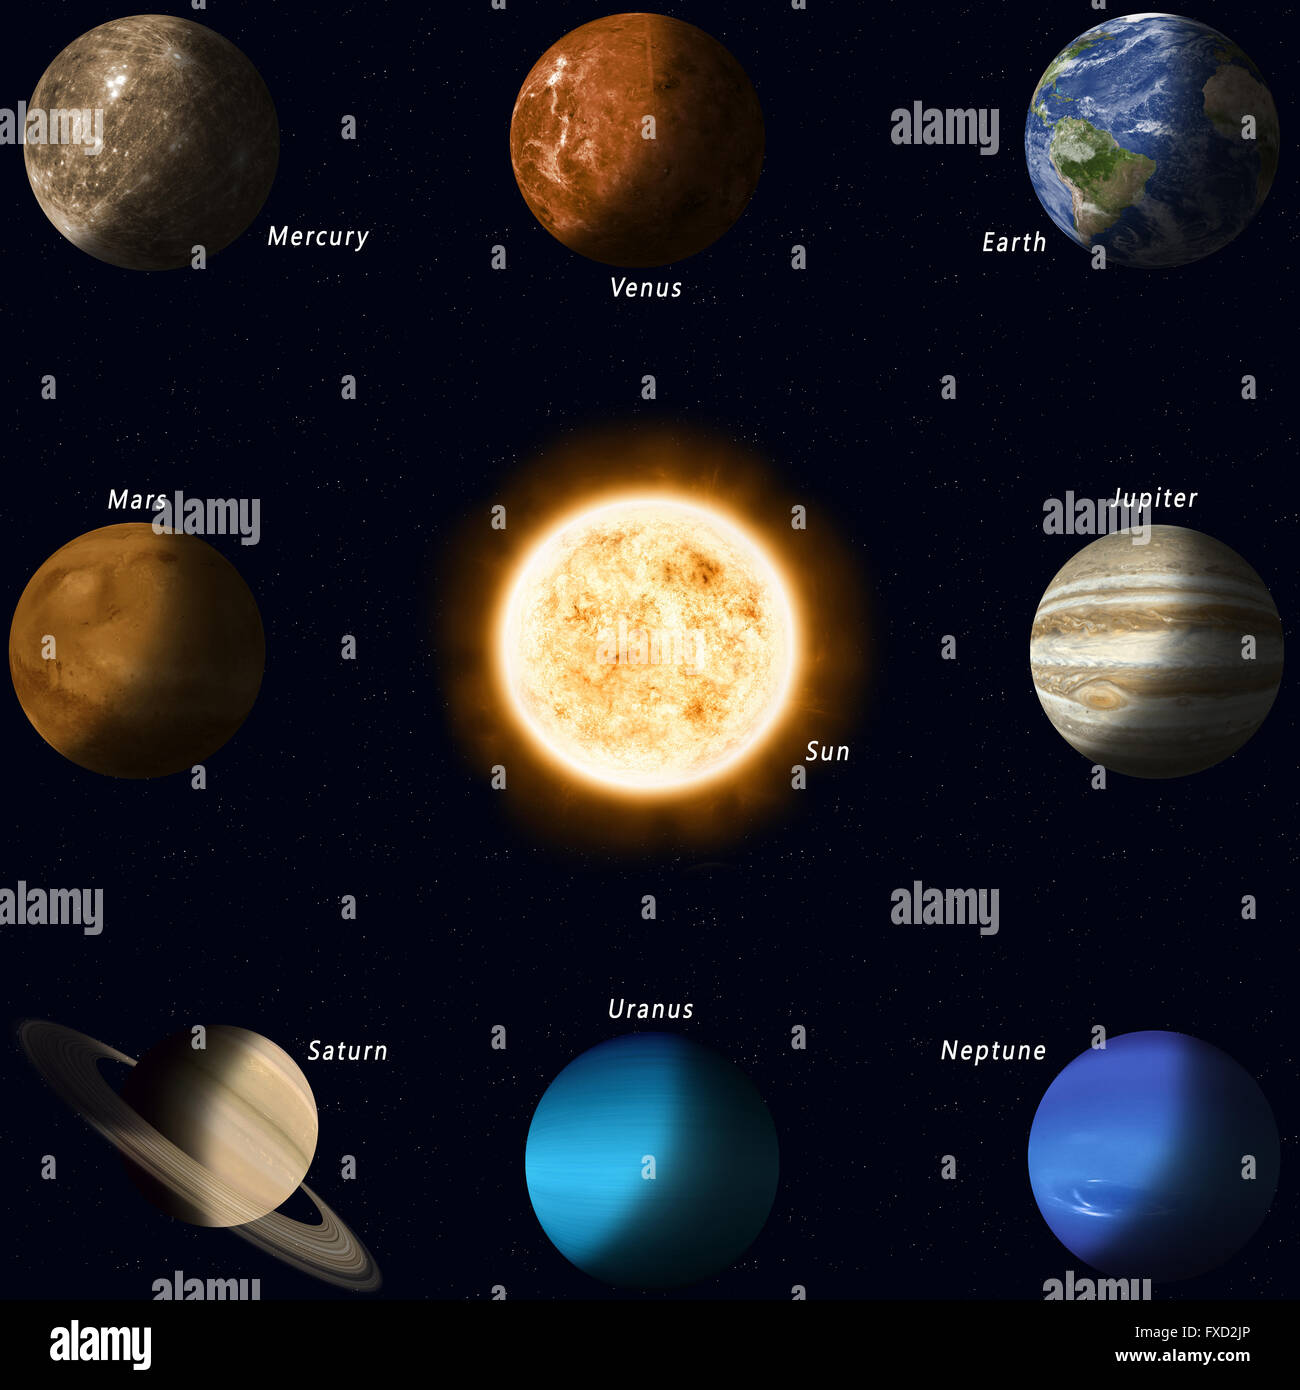 All Solar System Planets With Names And Sun In The Center